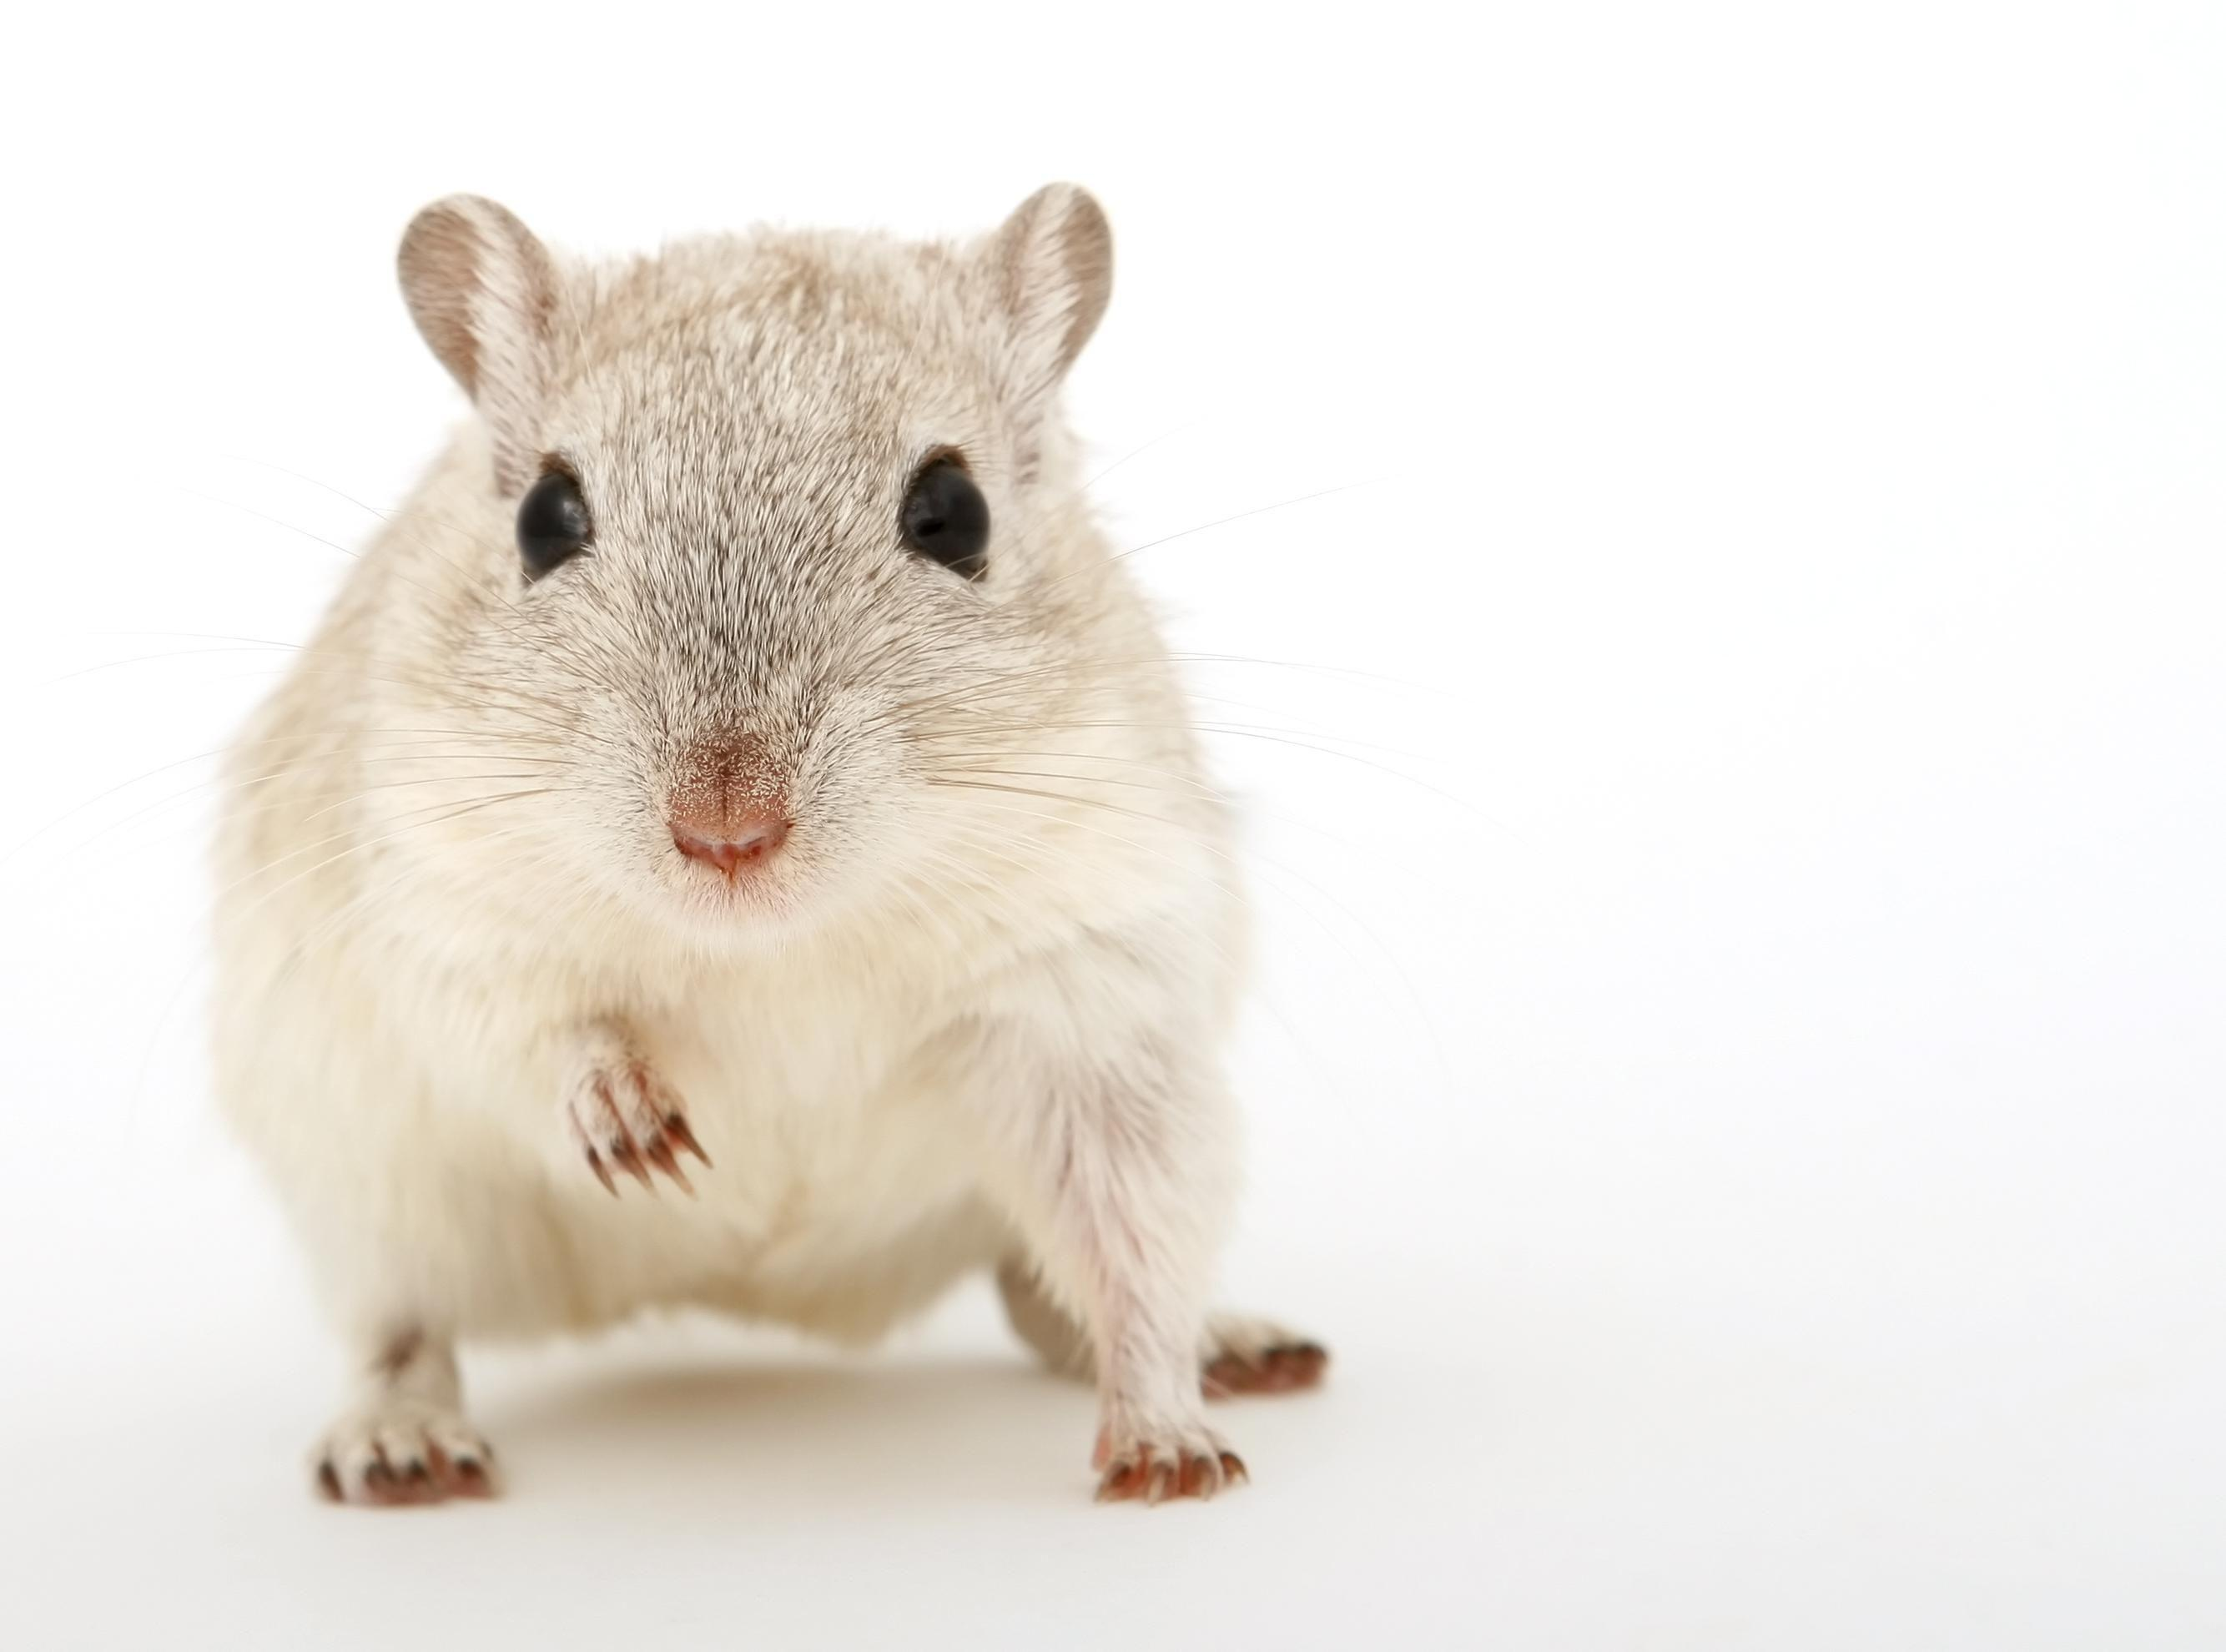 Gerbil Wallpapers HD Download